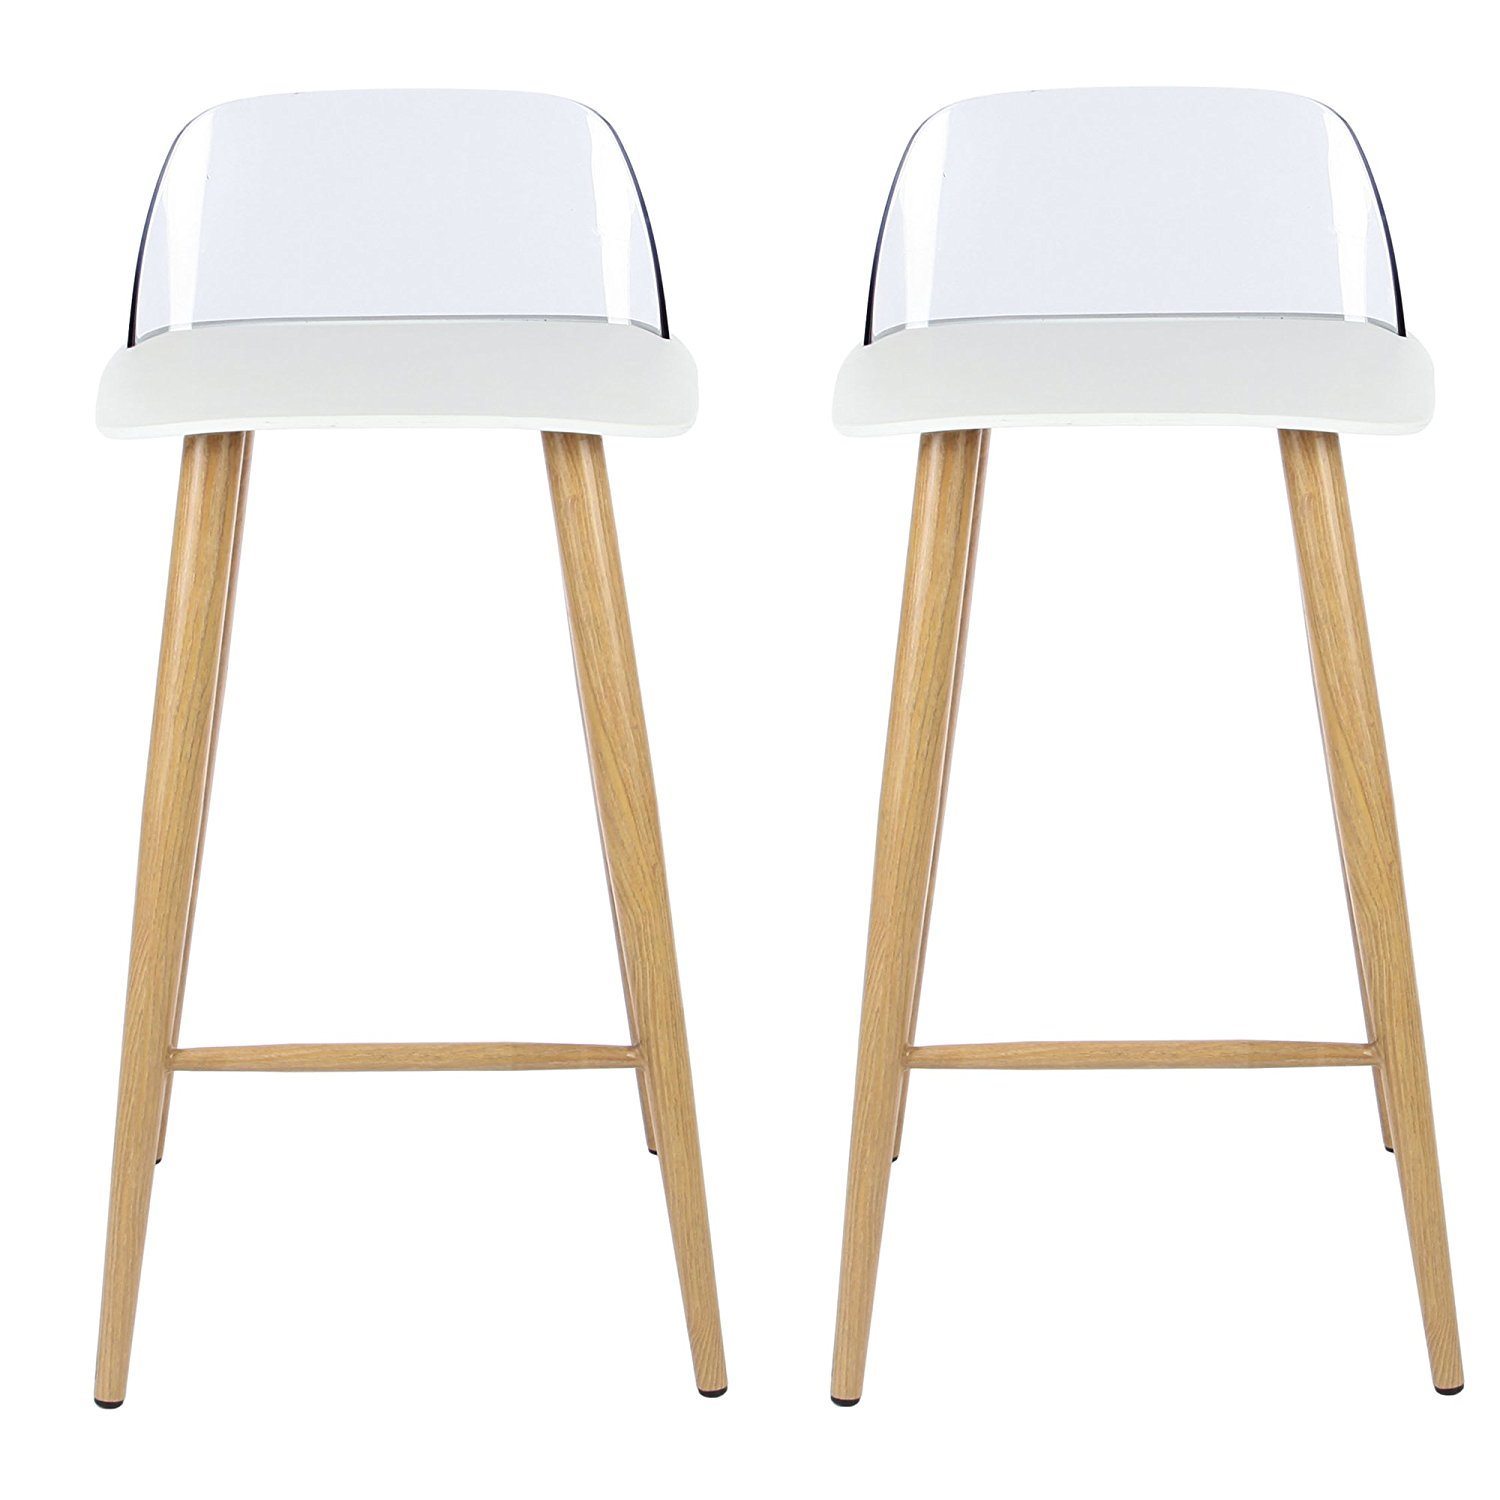 22 Inch Counter Height Stools